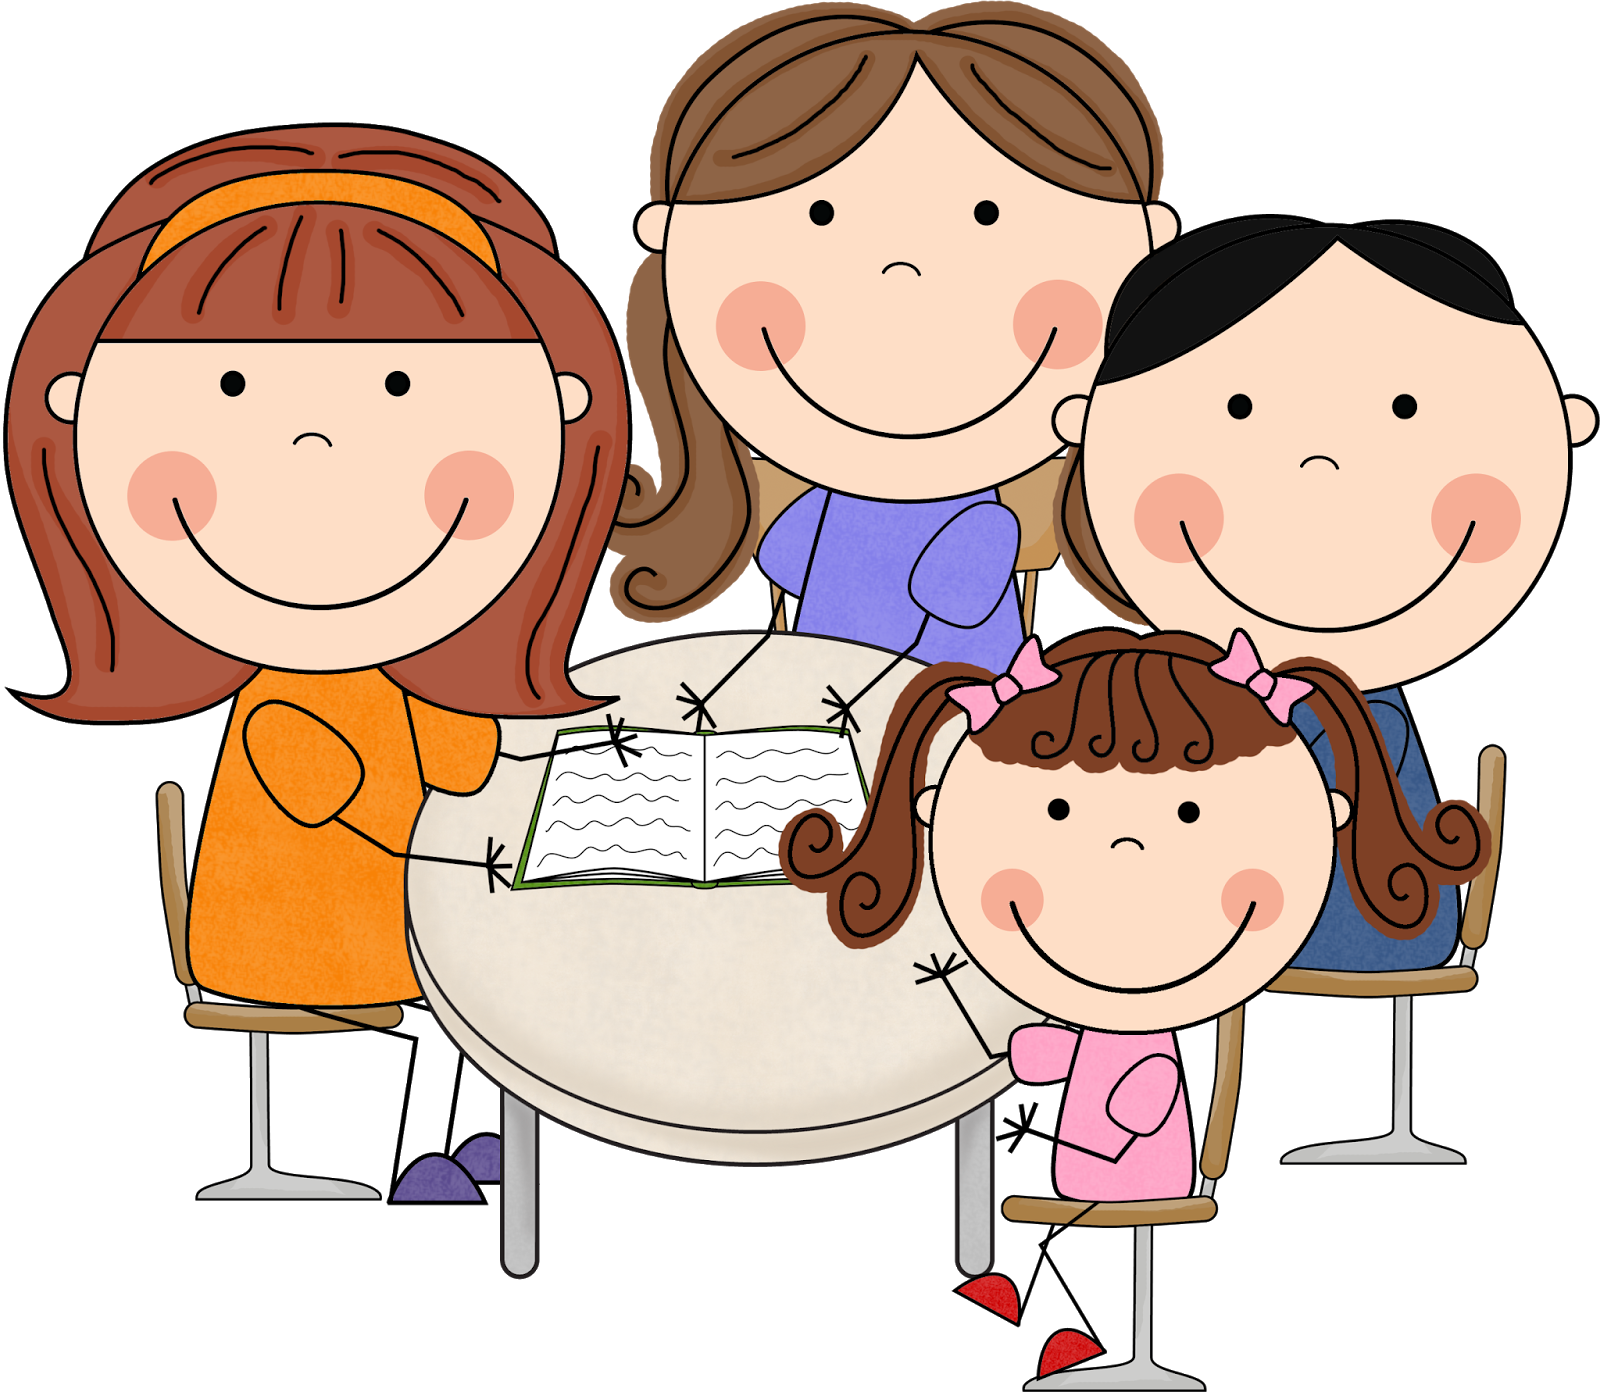 Parents school clipart graphic royalty free download 28+ Collection of Parent Teacher Meeting Clipart | High quality ... graphic royalty free download